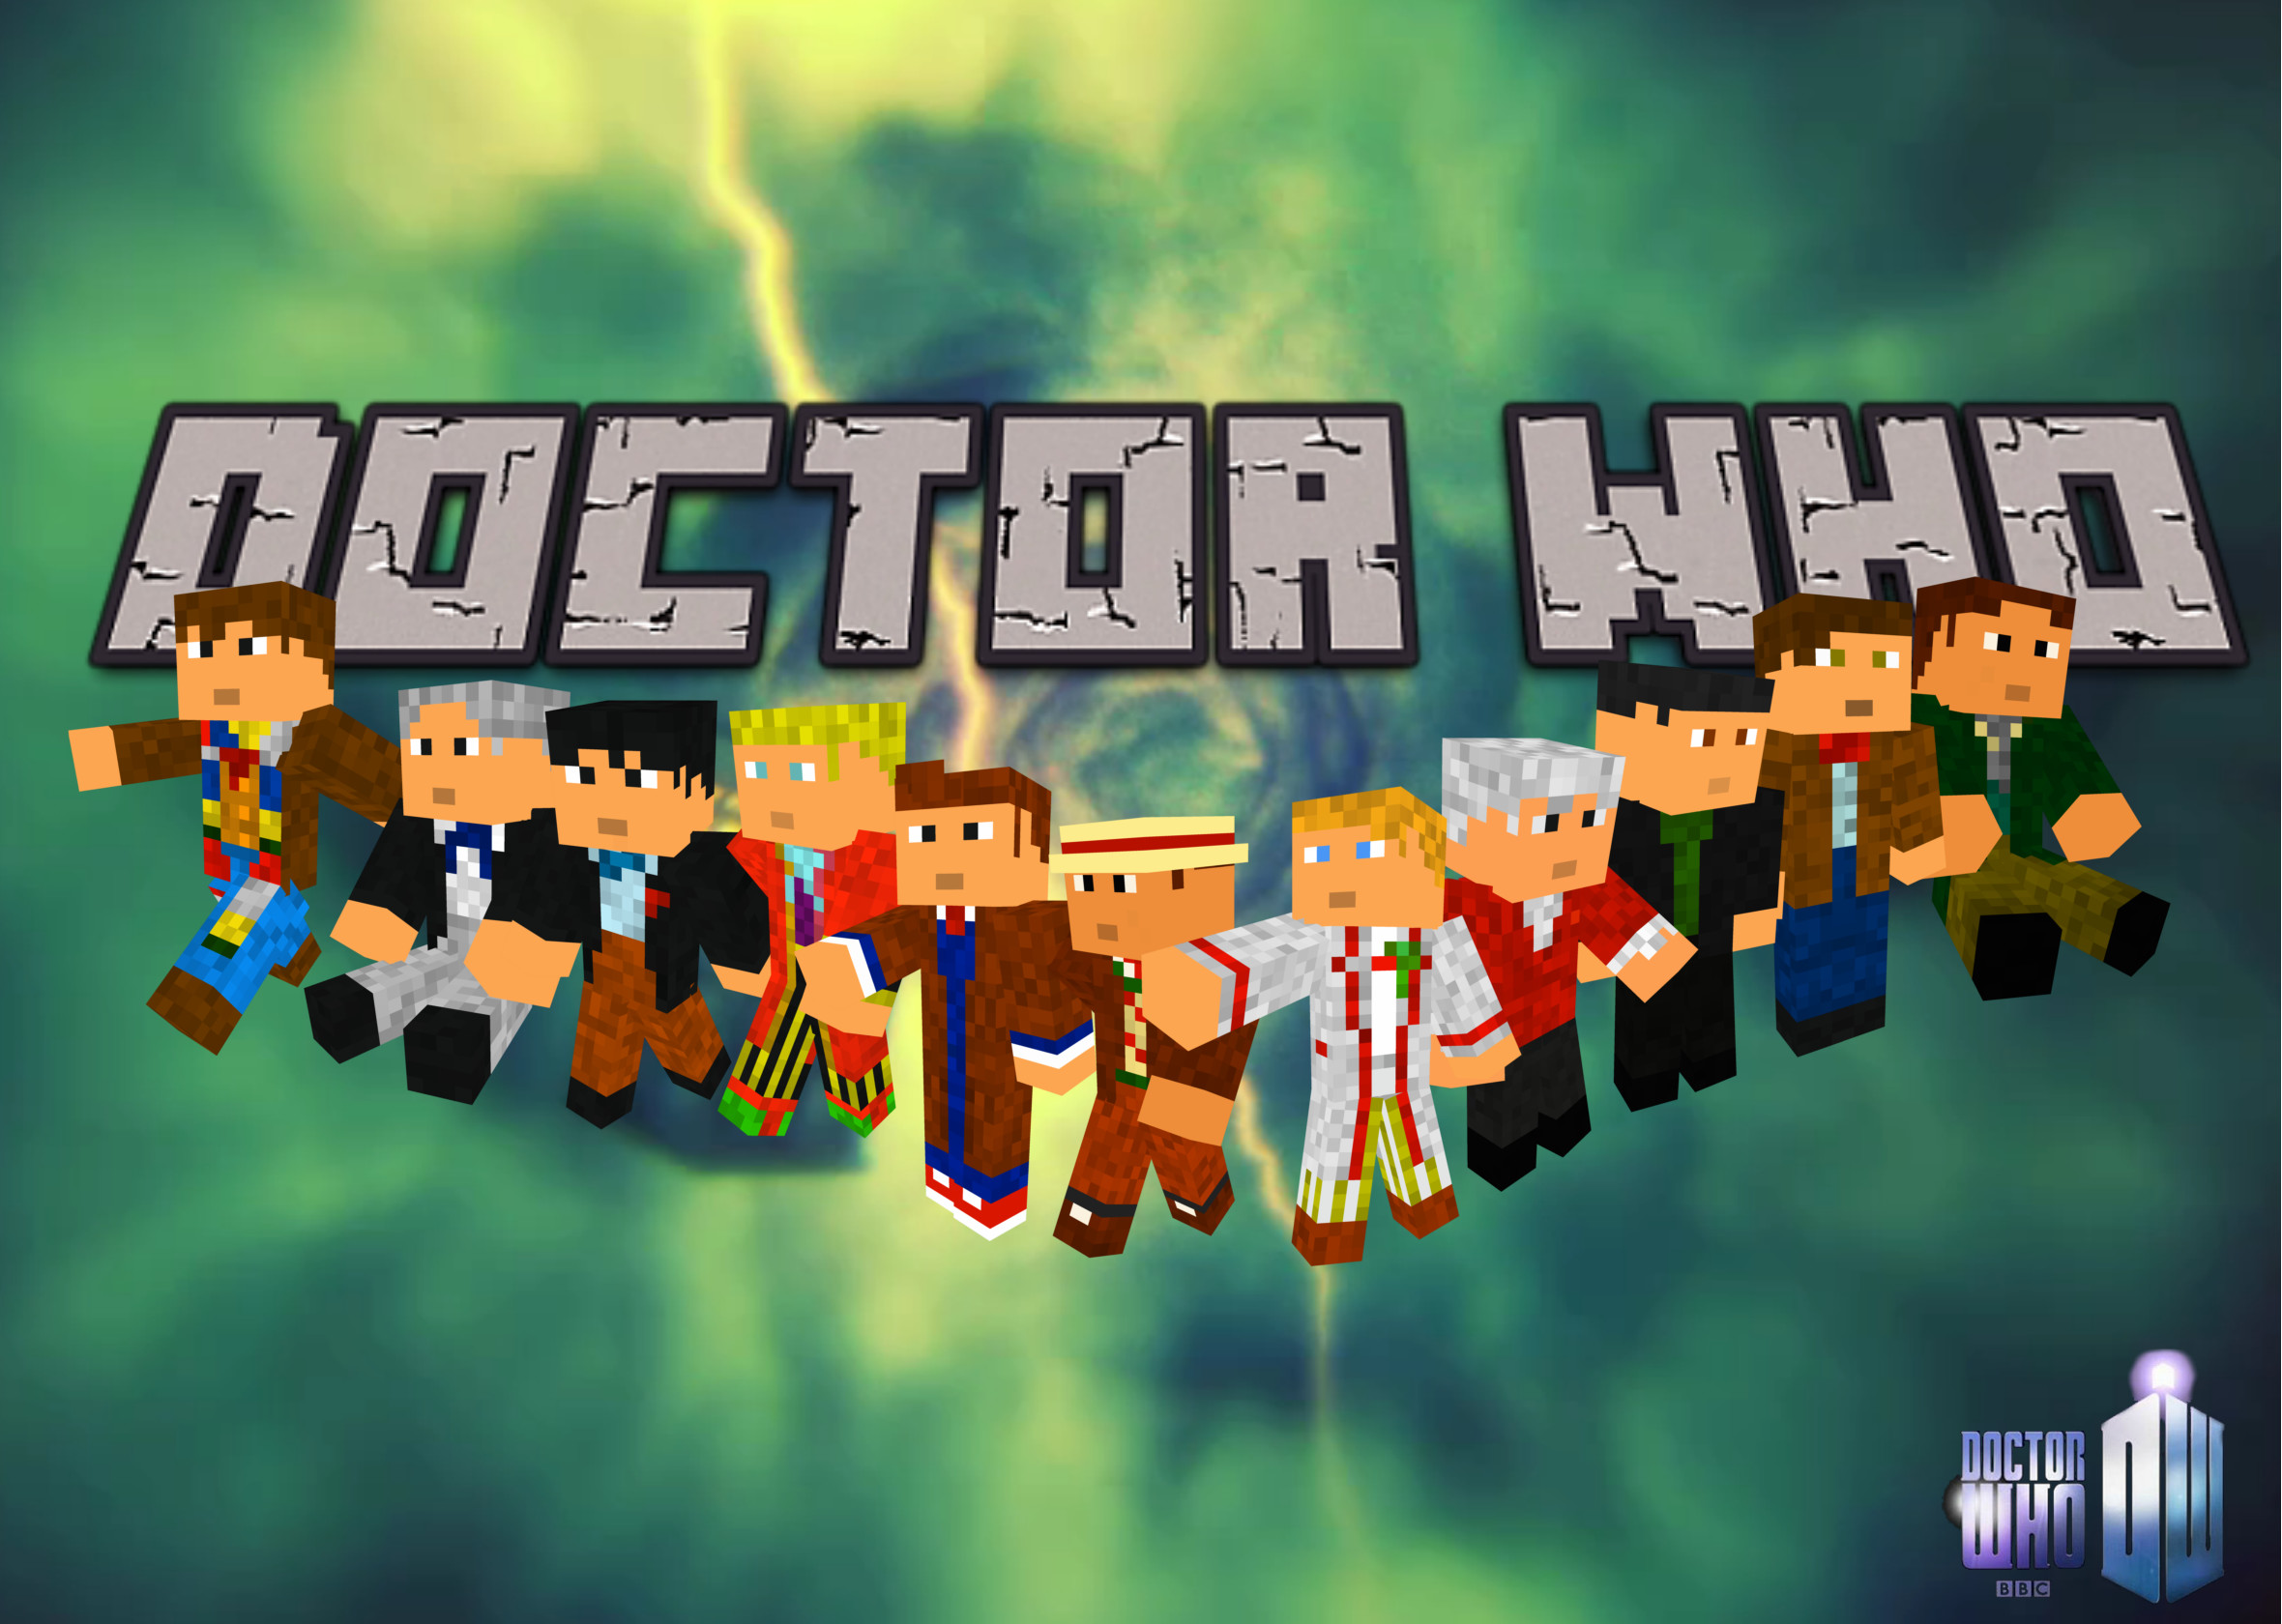 Doctor Who Minecraft Wallpaper by Captainpikachu Doctor Who Minecraft  Wallpaper by Captainpikachu